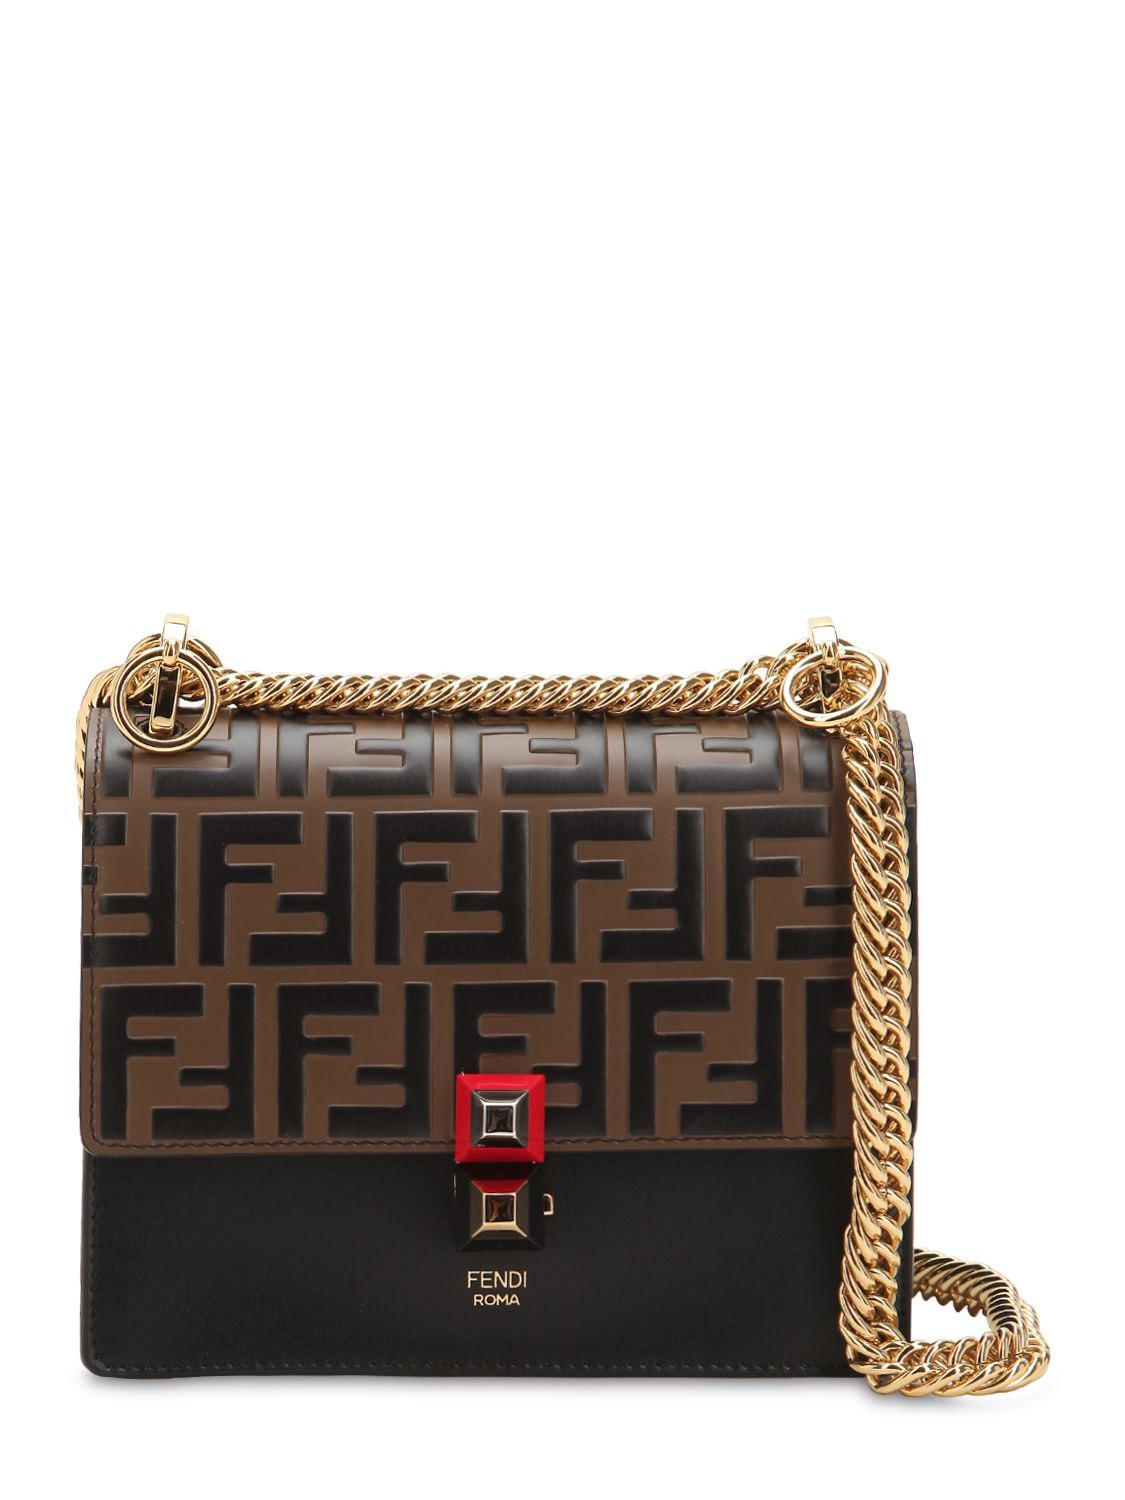 33610990c4a8 Fendi Small Kan I Logo Embossed Leather Bag in Brown - Lyst